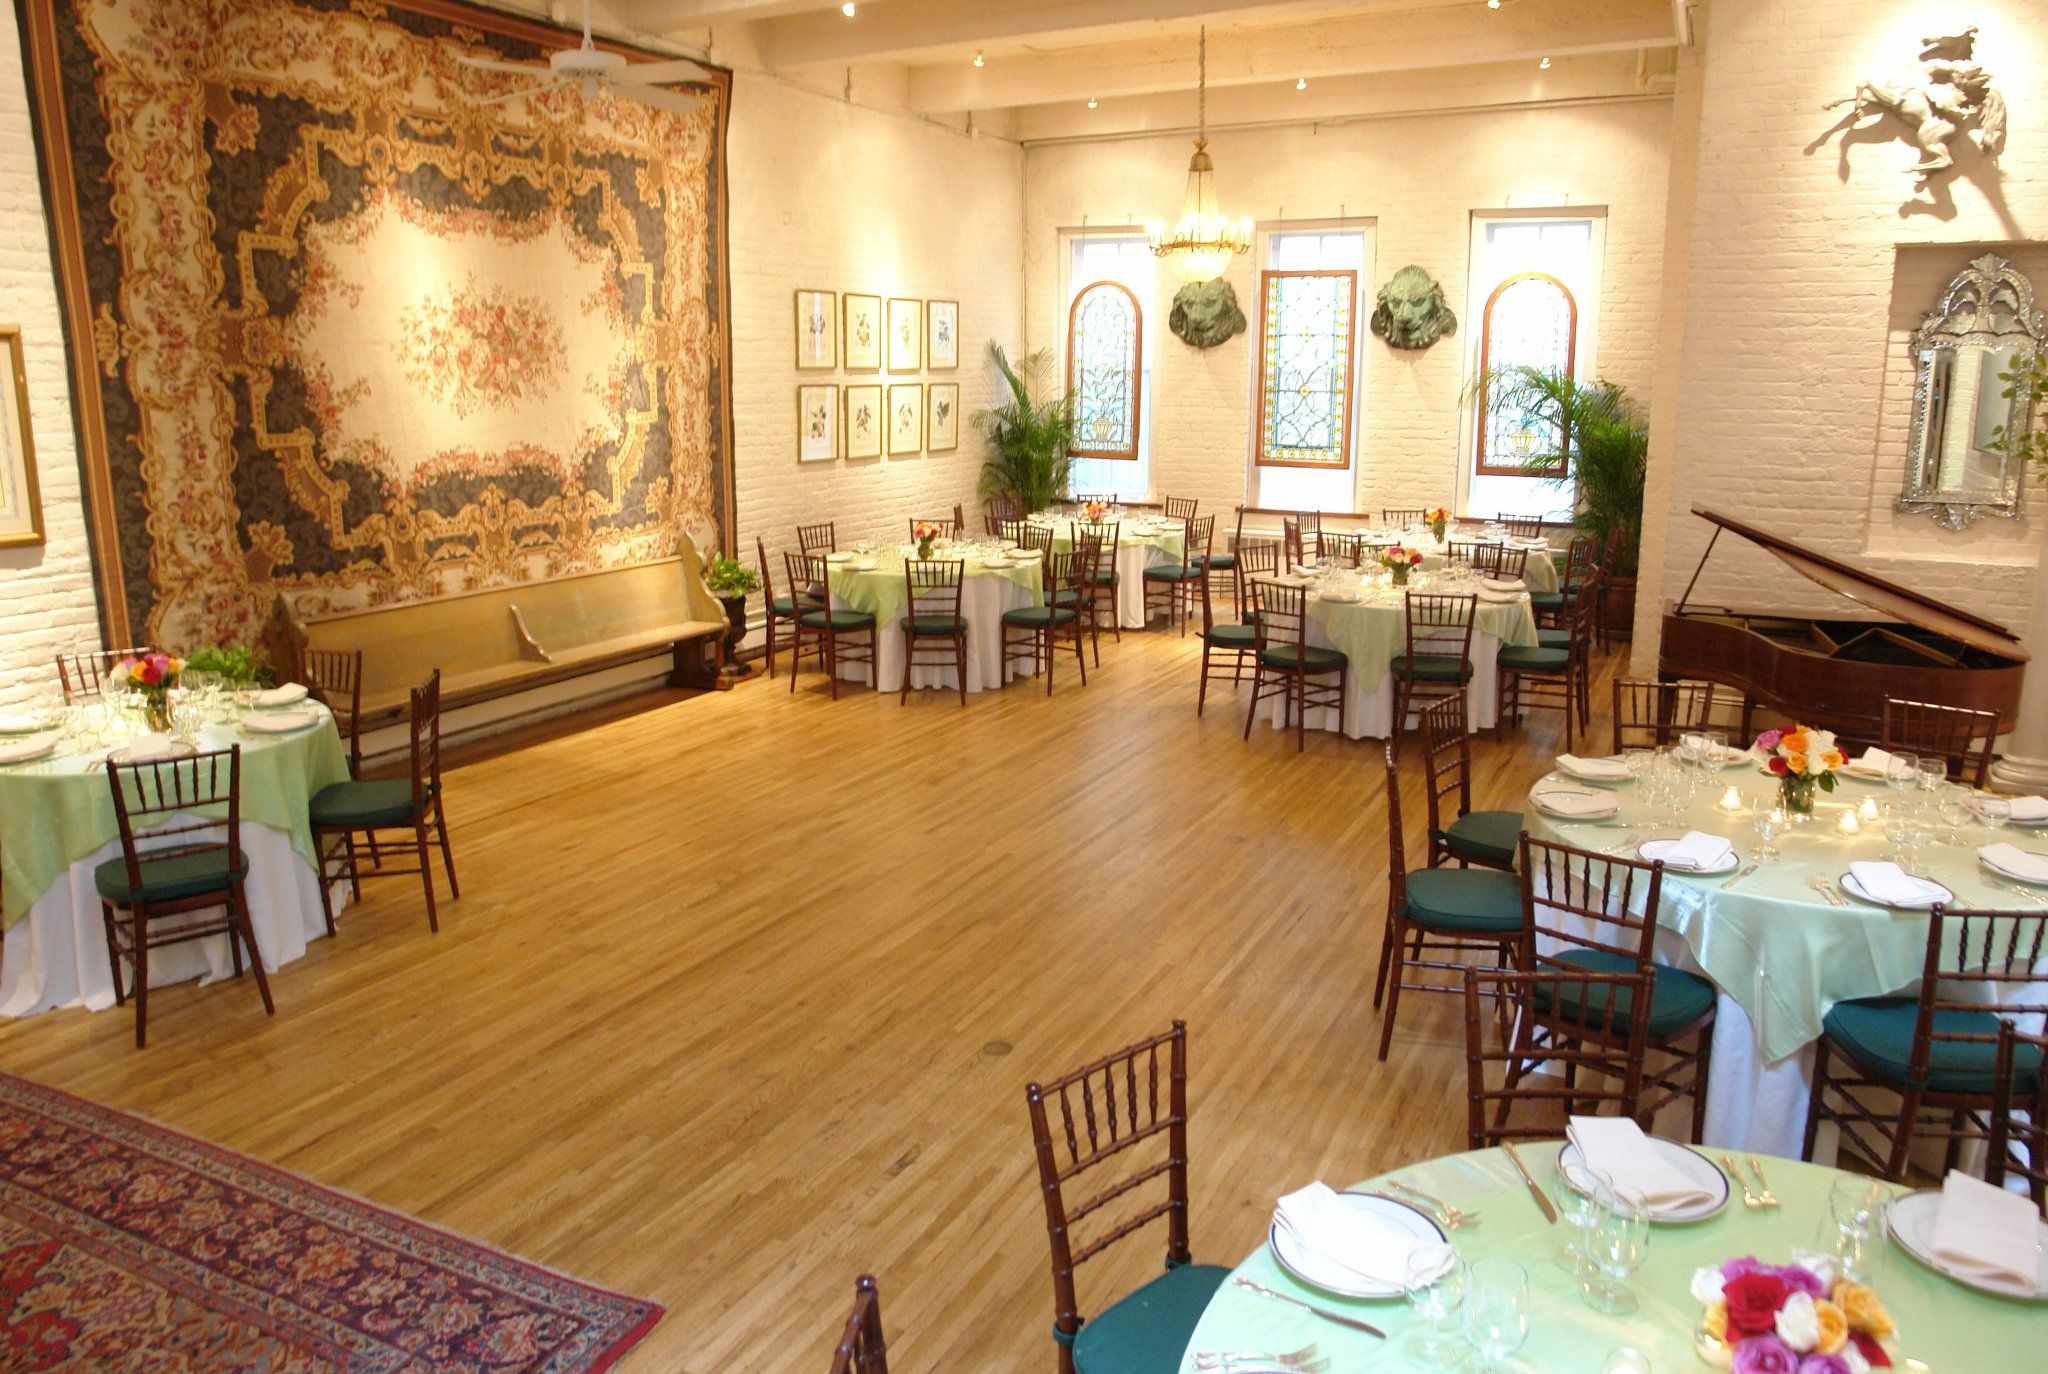 Unique Affordable Small Wedding Venue Corporate Event And Private Dinner Party Location In New York City